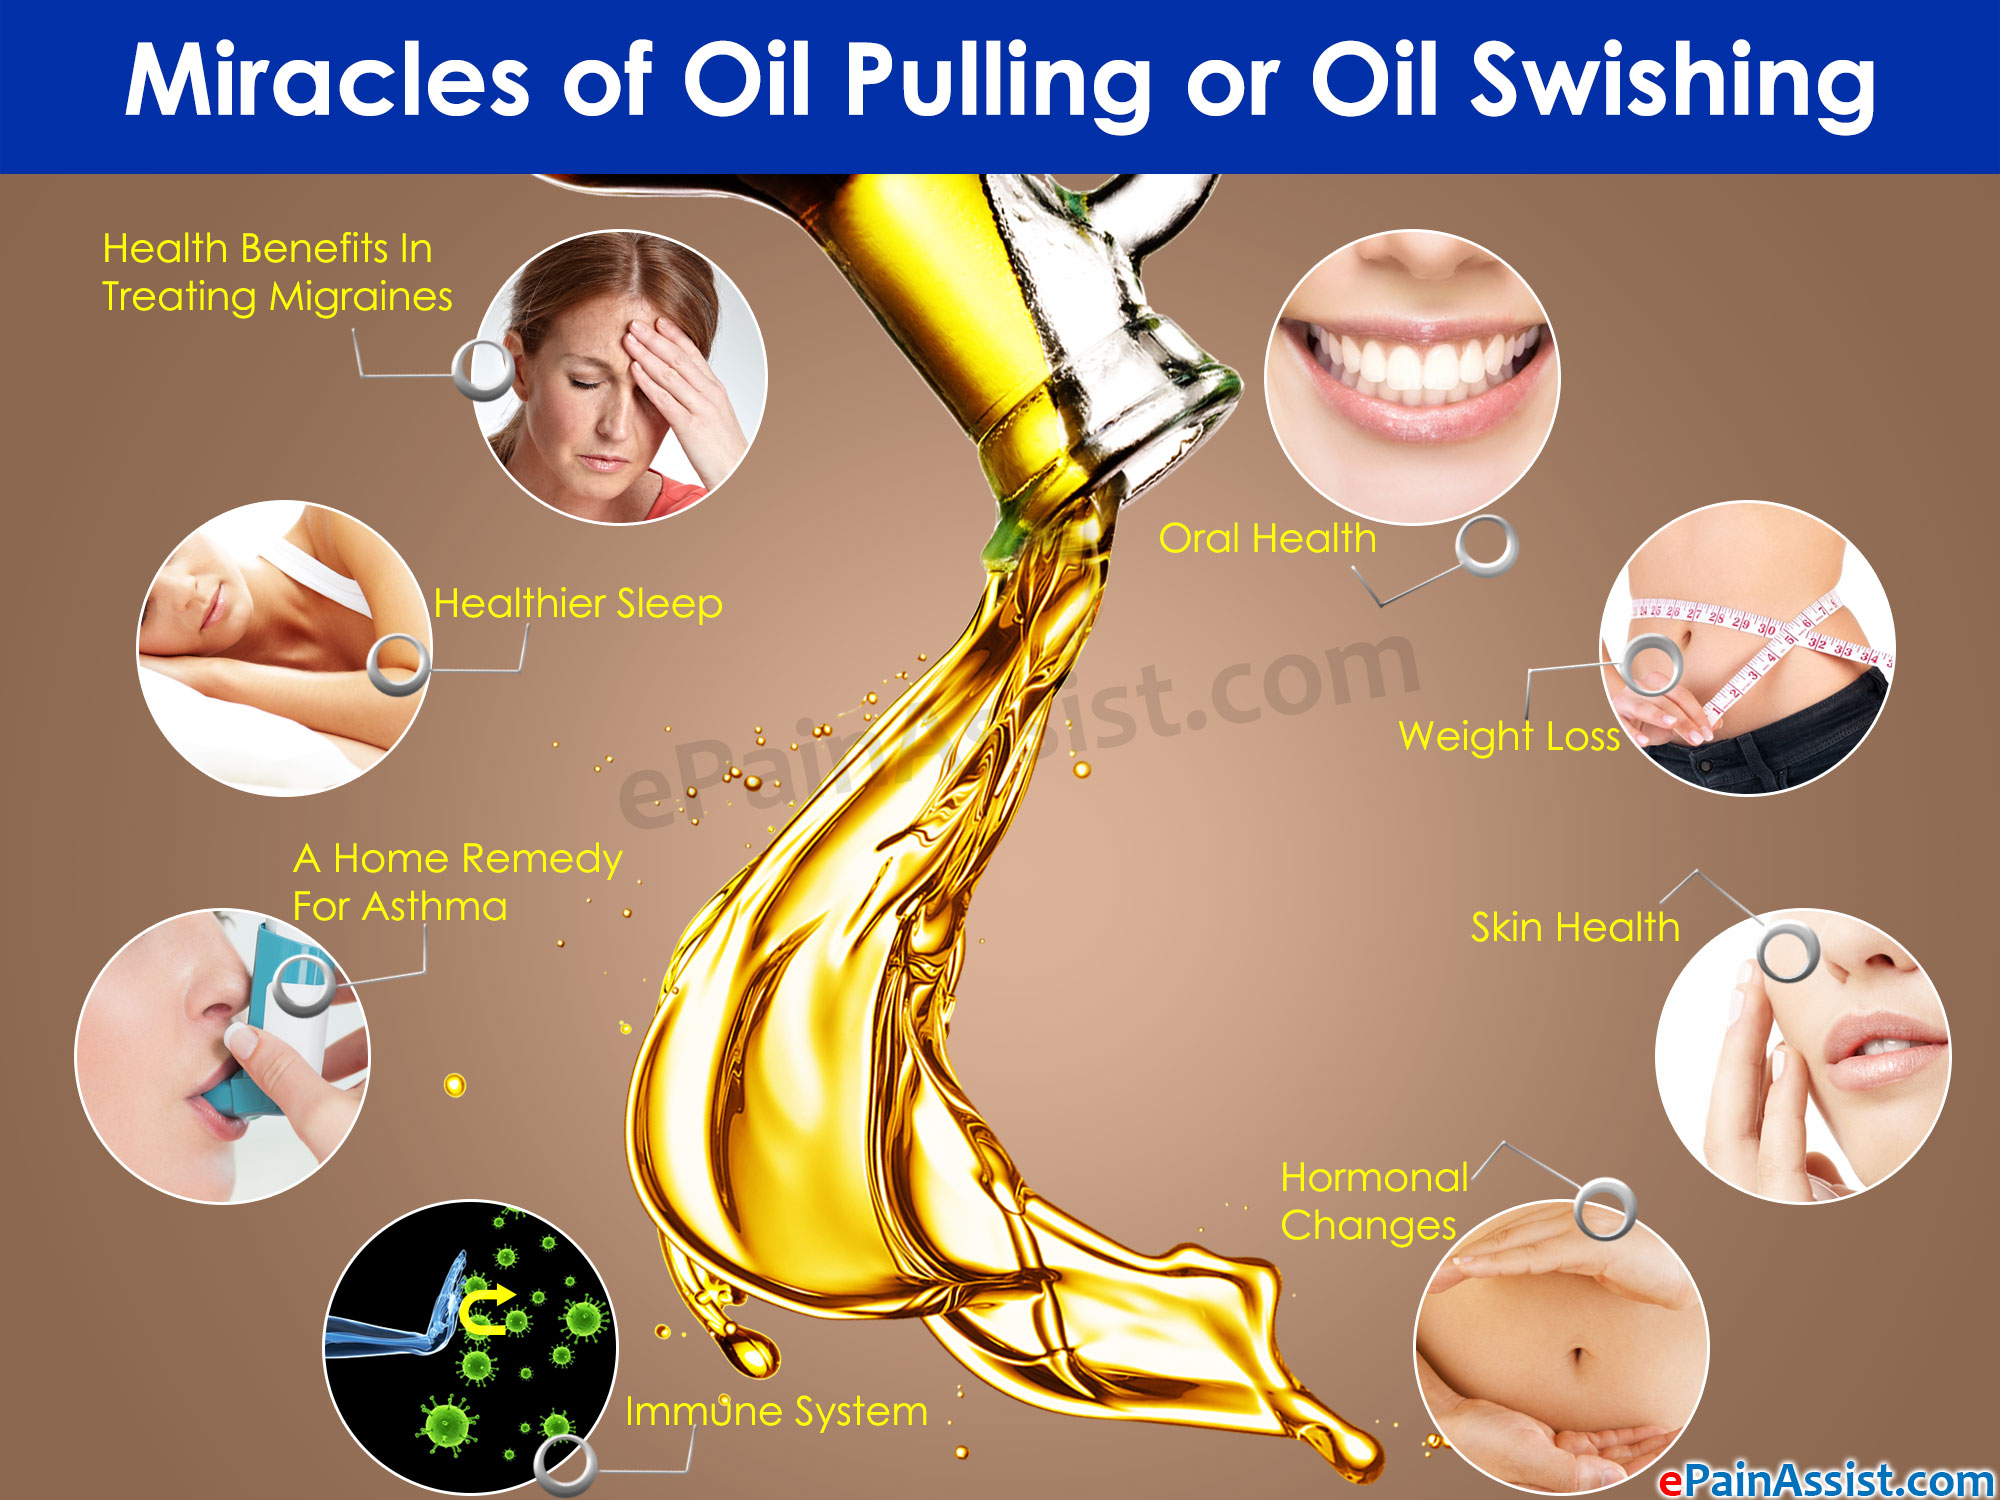 Miracles of Oil Pulling or Oil Swishing